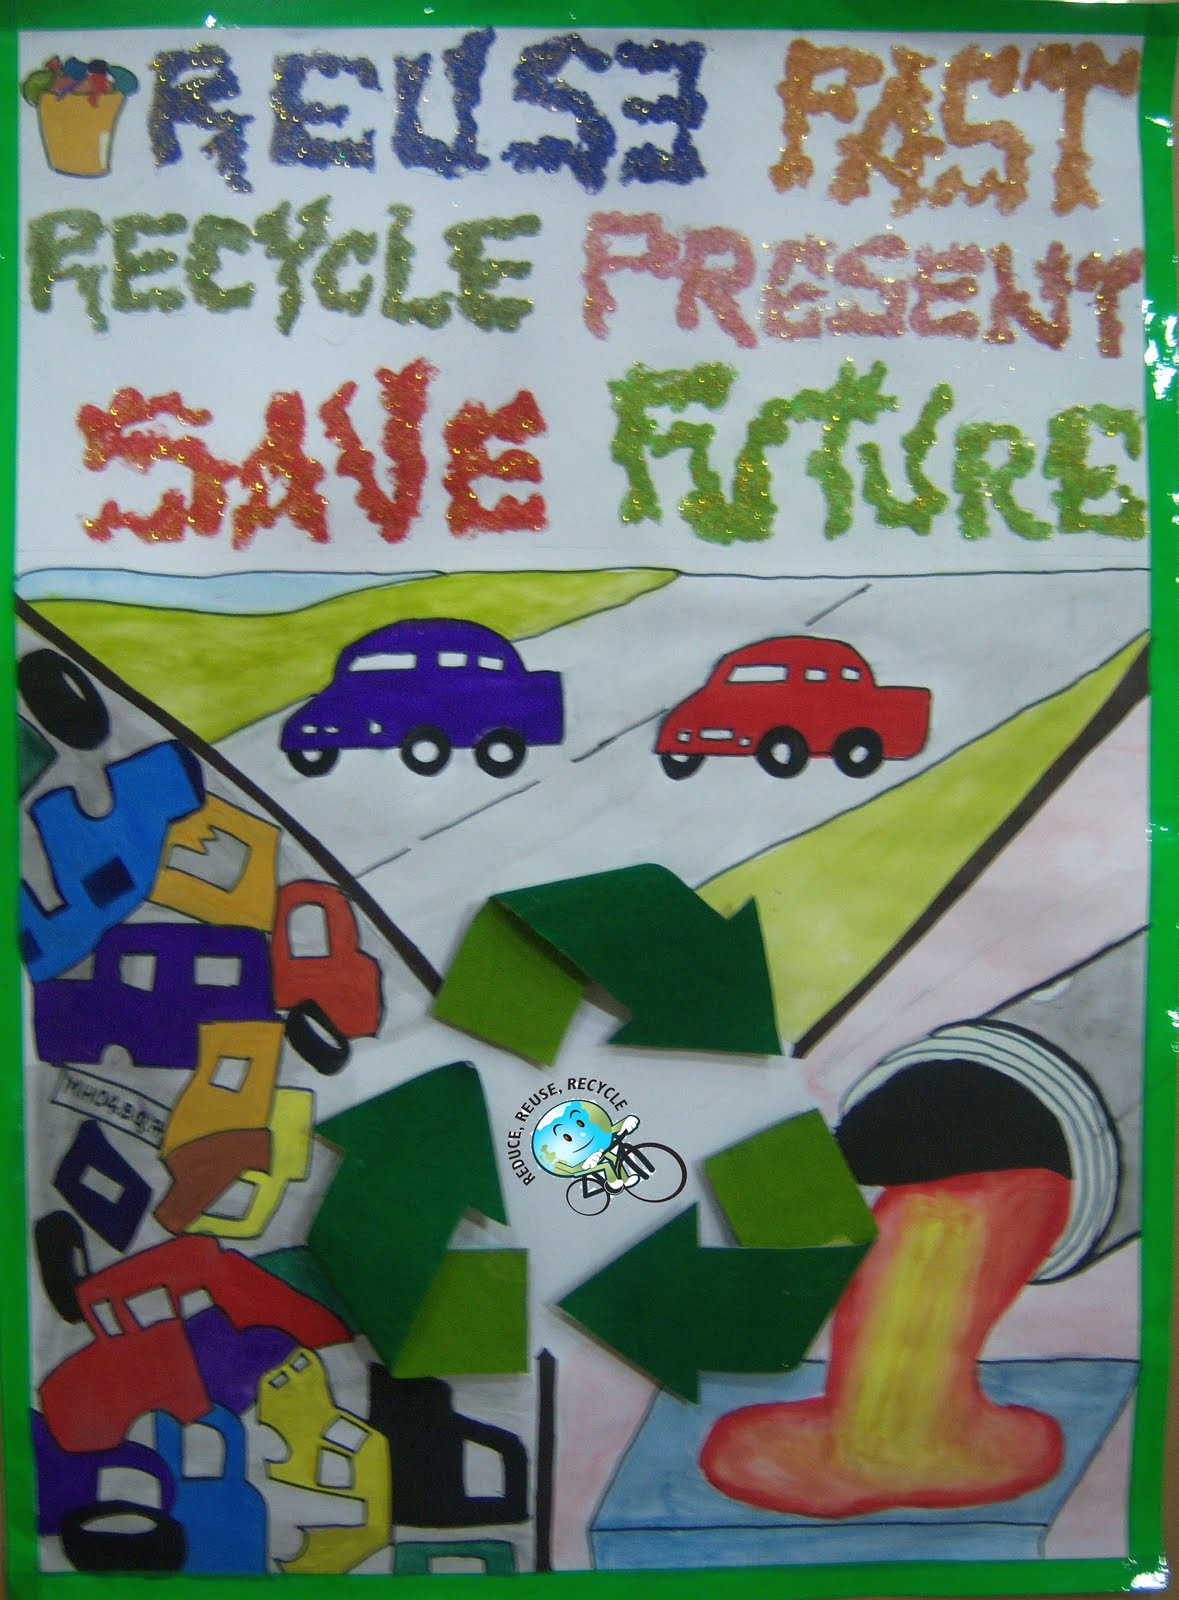 essay on reuse the past recycle the present Recycling starts with you and discover why we recycle review the answers as a group or collect their papers to check responses.